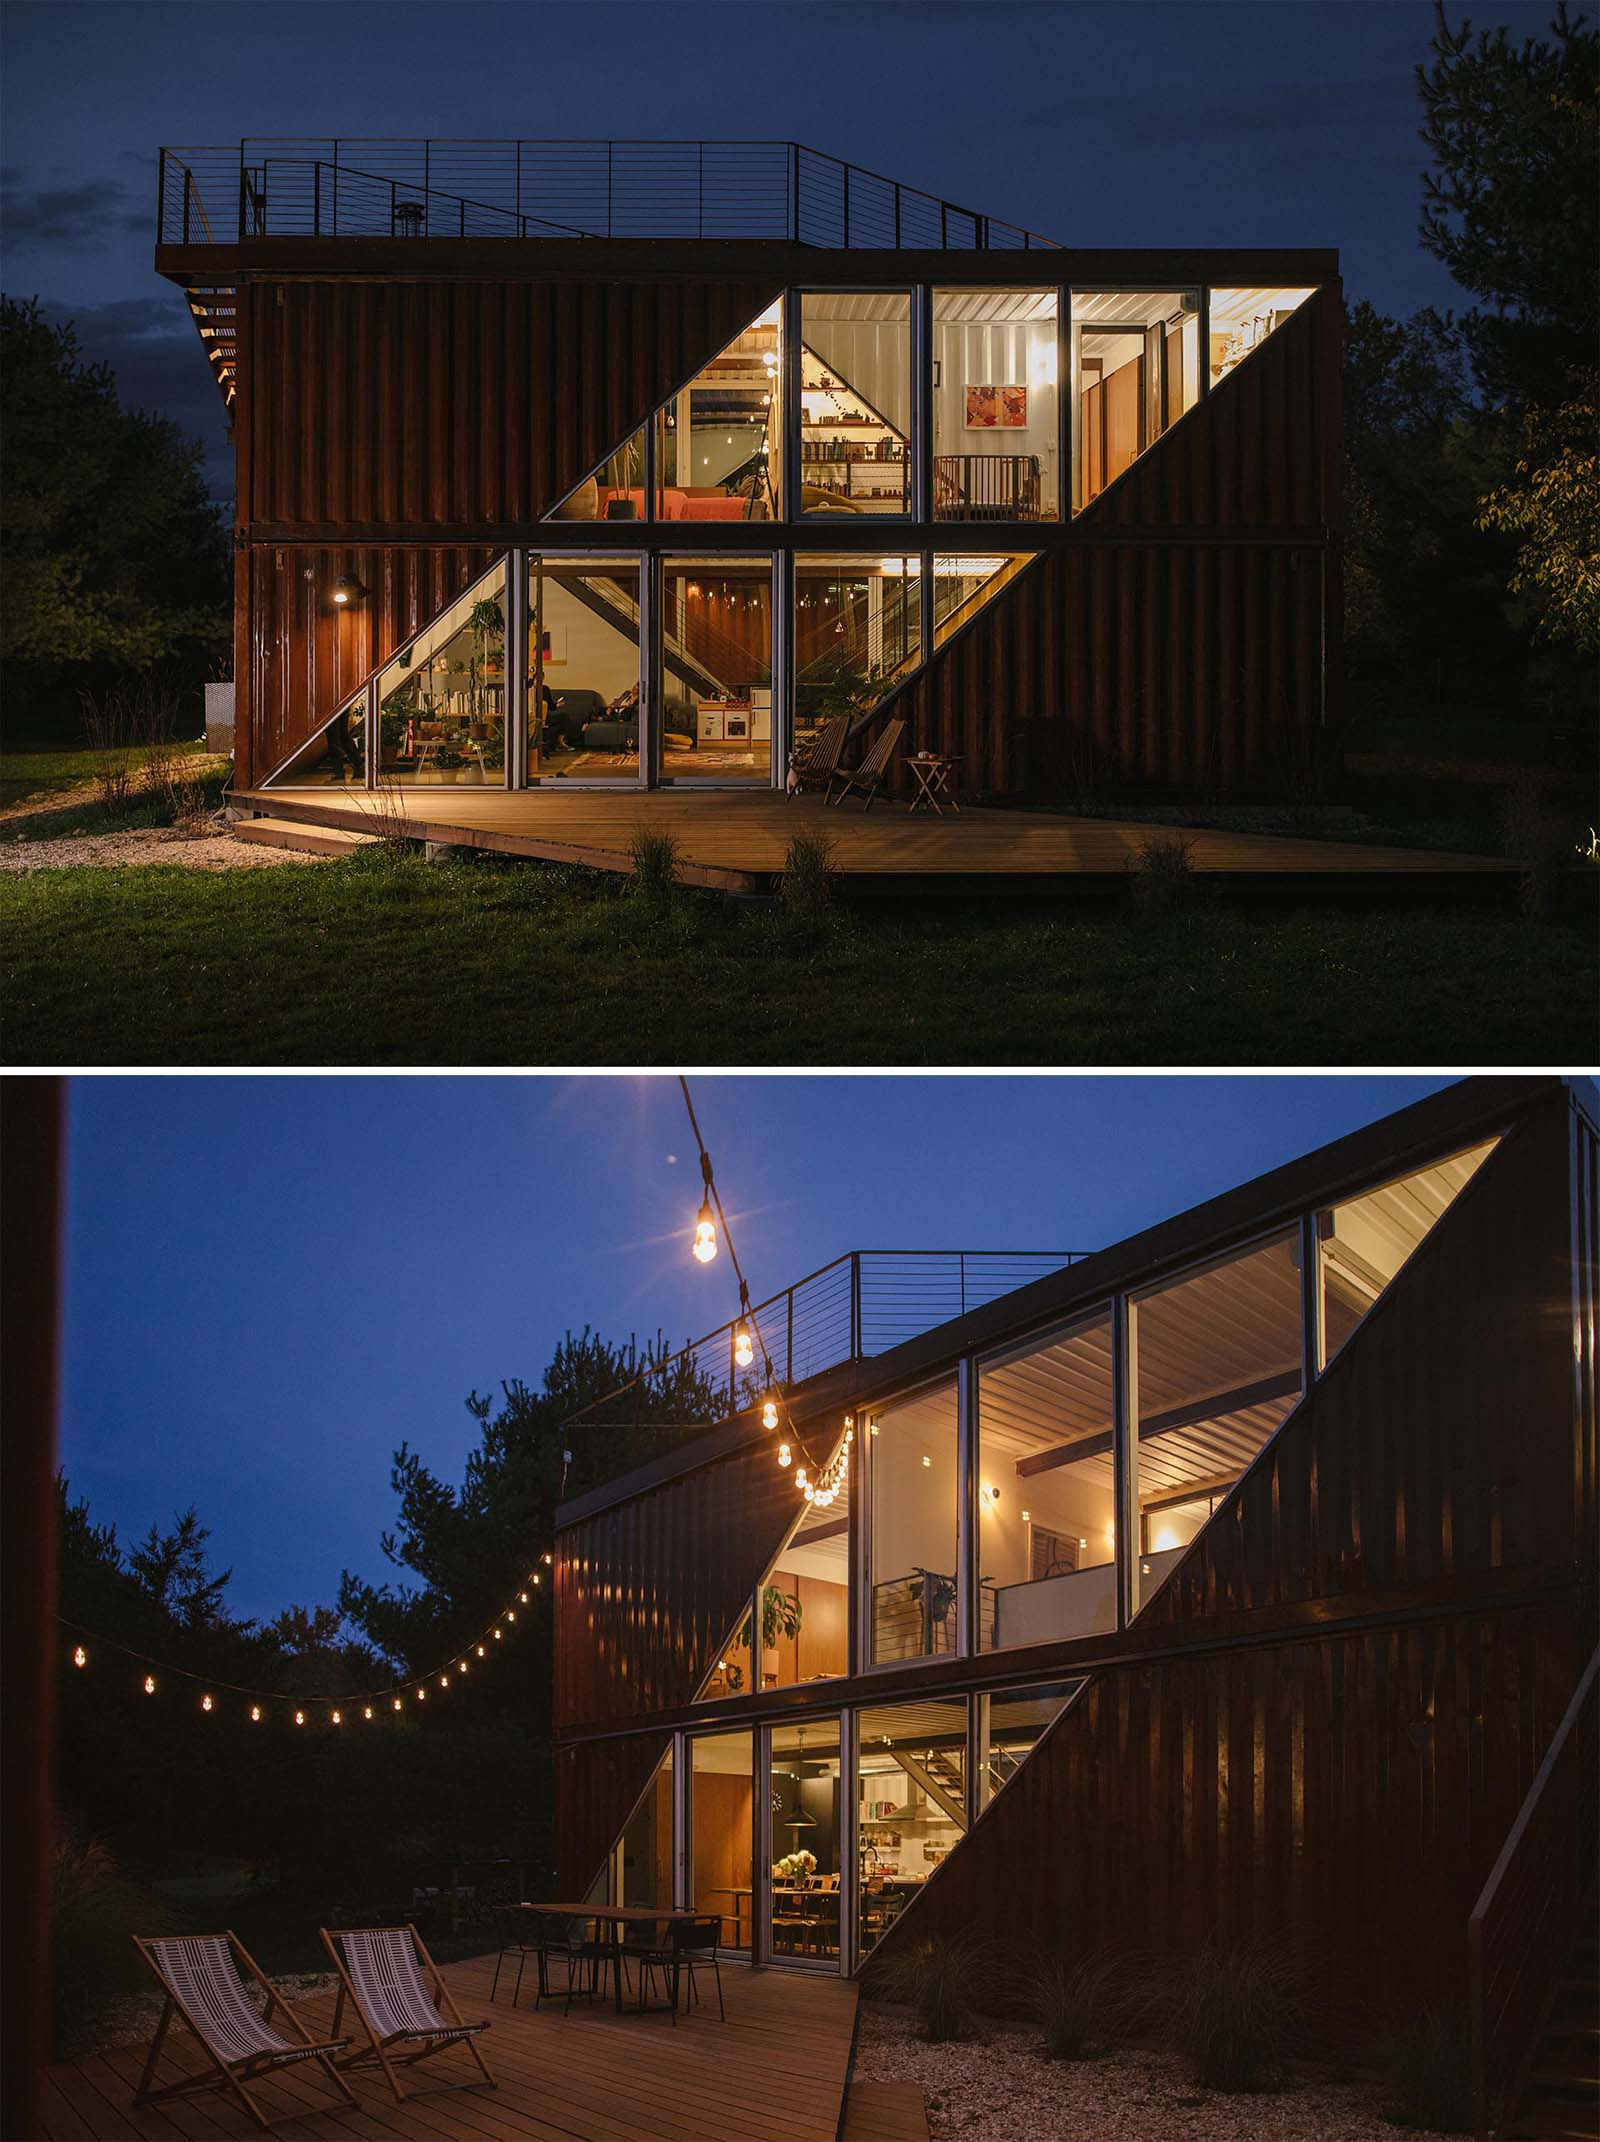 A modern shipping container home with two levels and a rooftop deck.